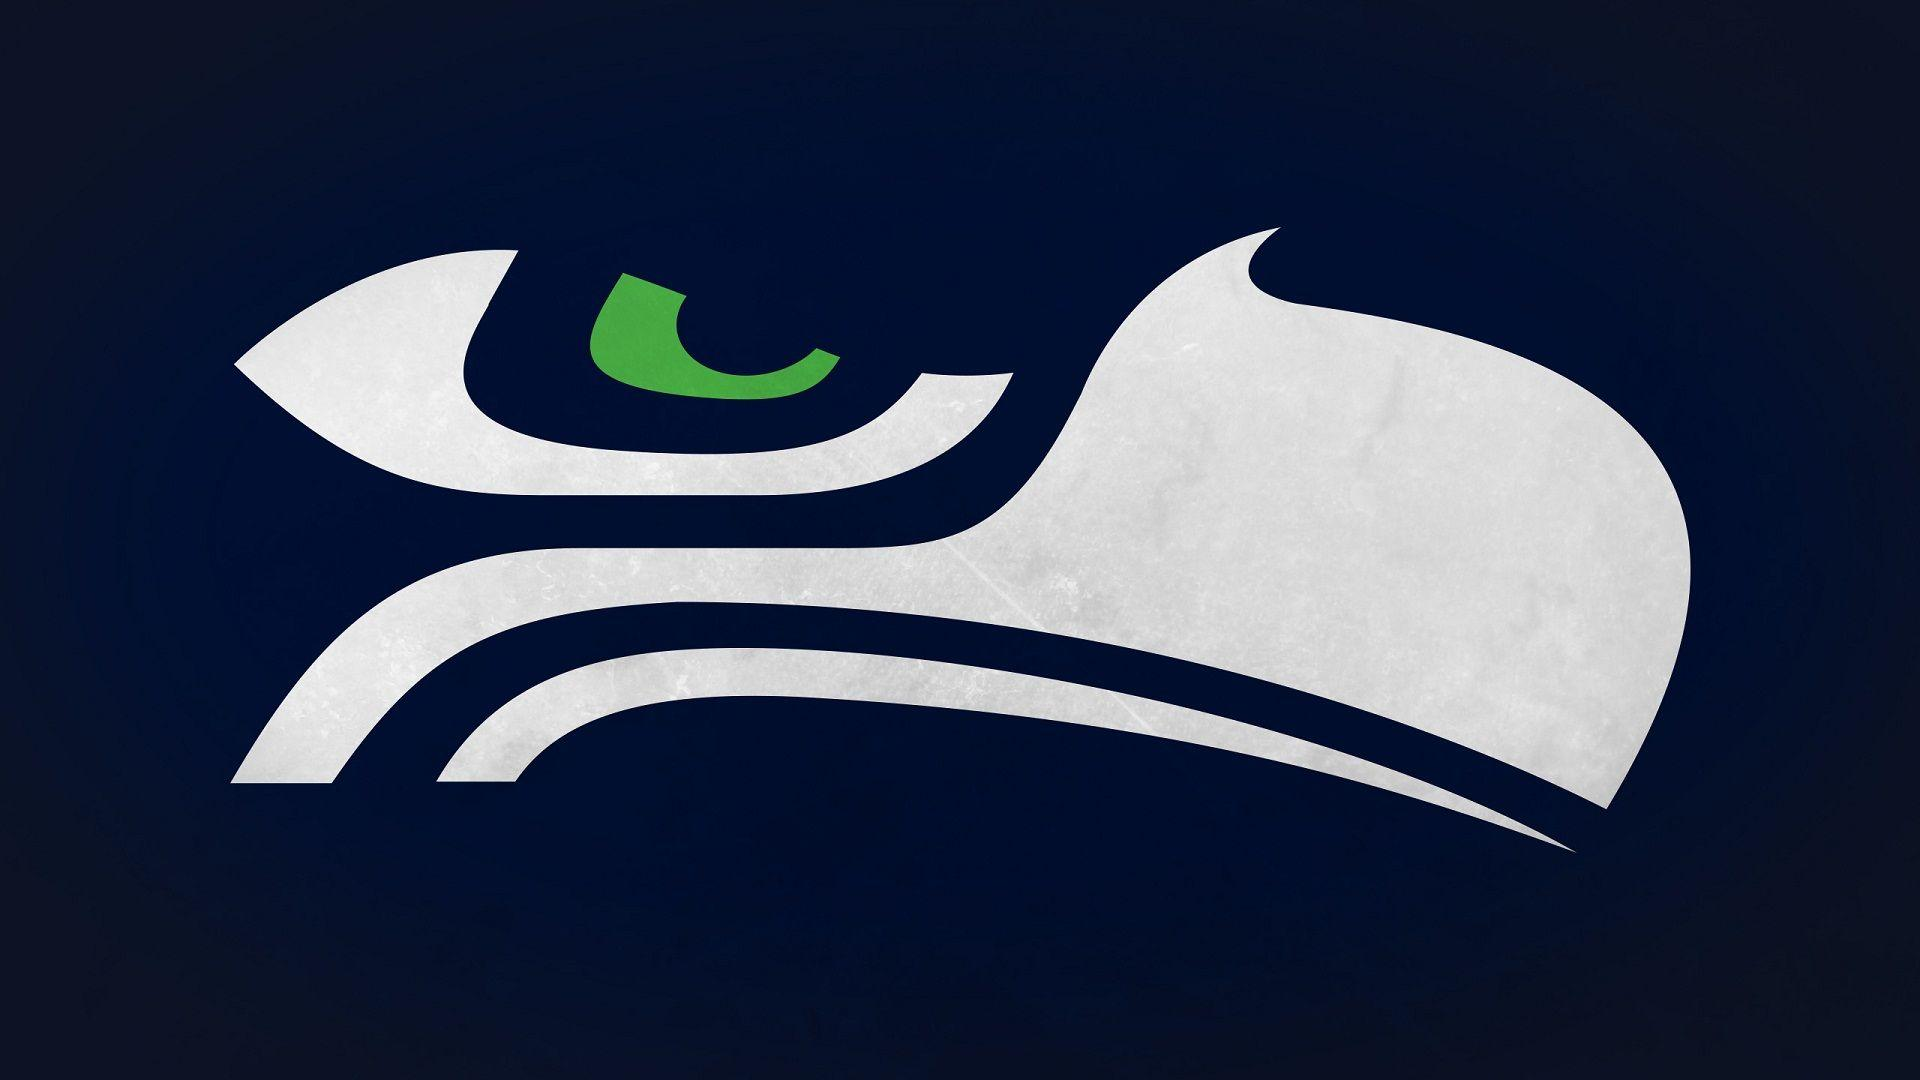 Logos For > Seahawks Logo Wallpapers For Ipad